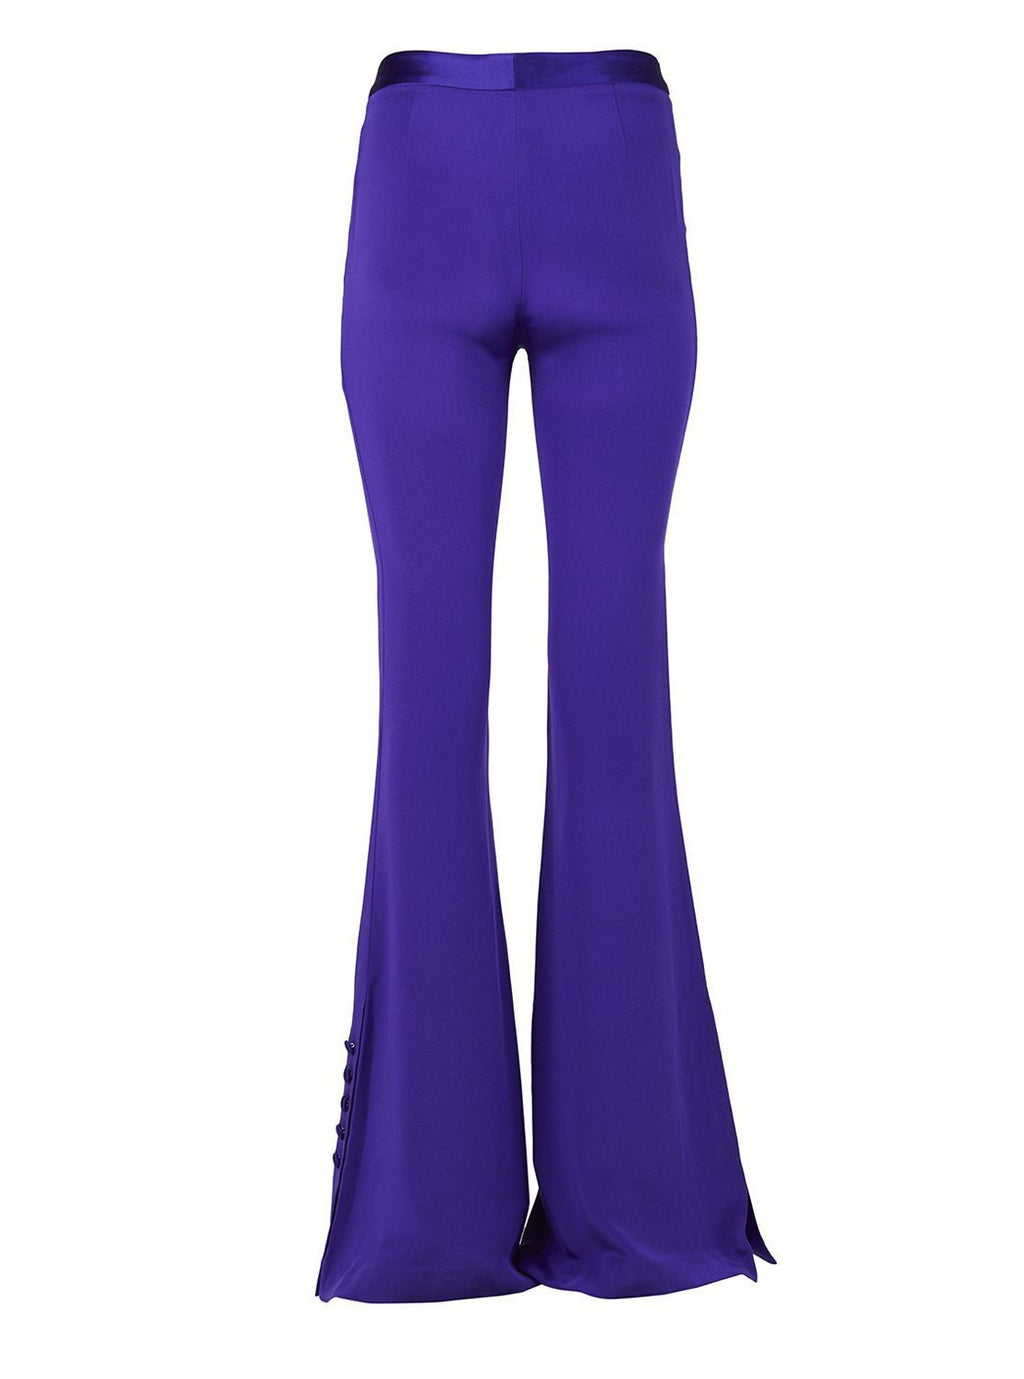 Gemma Suit Pants